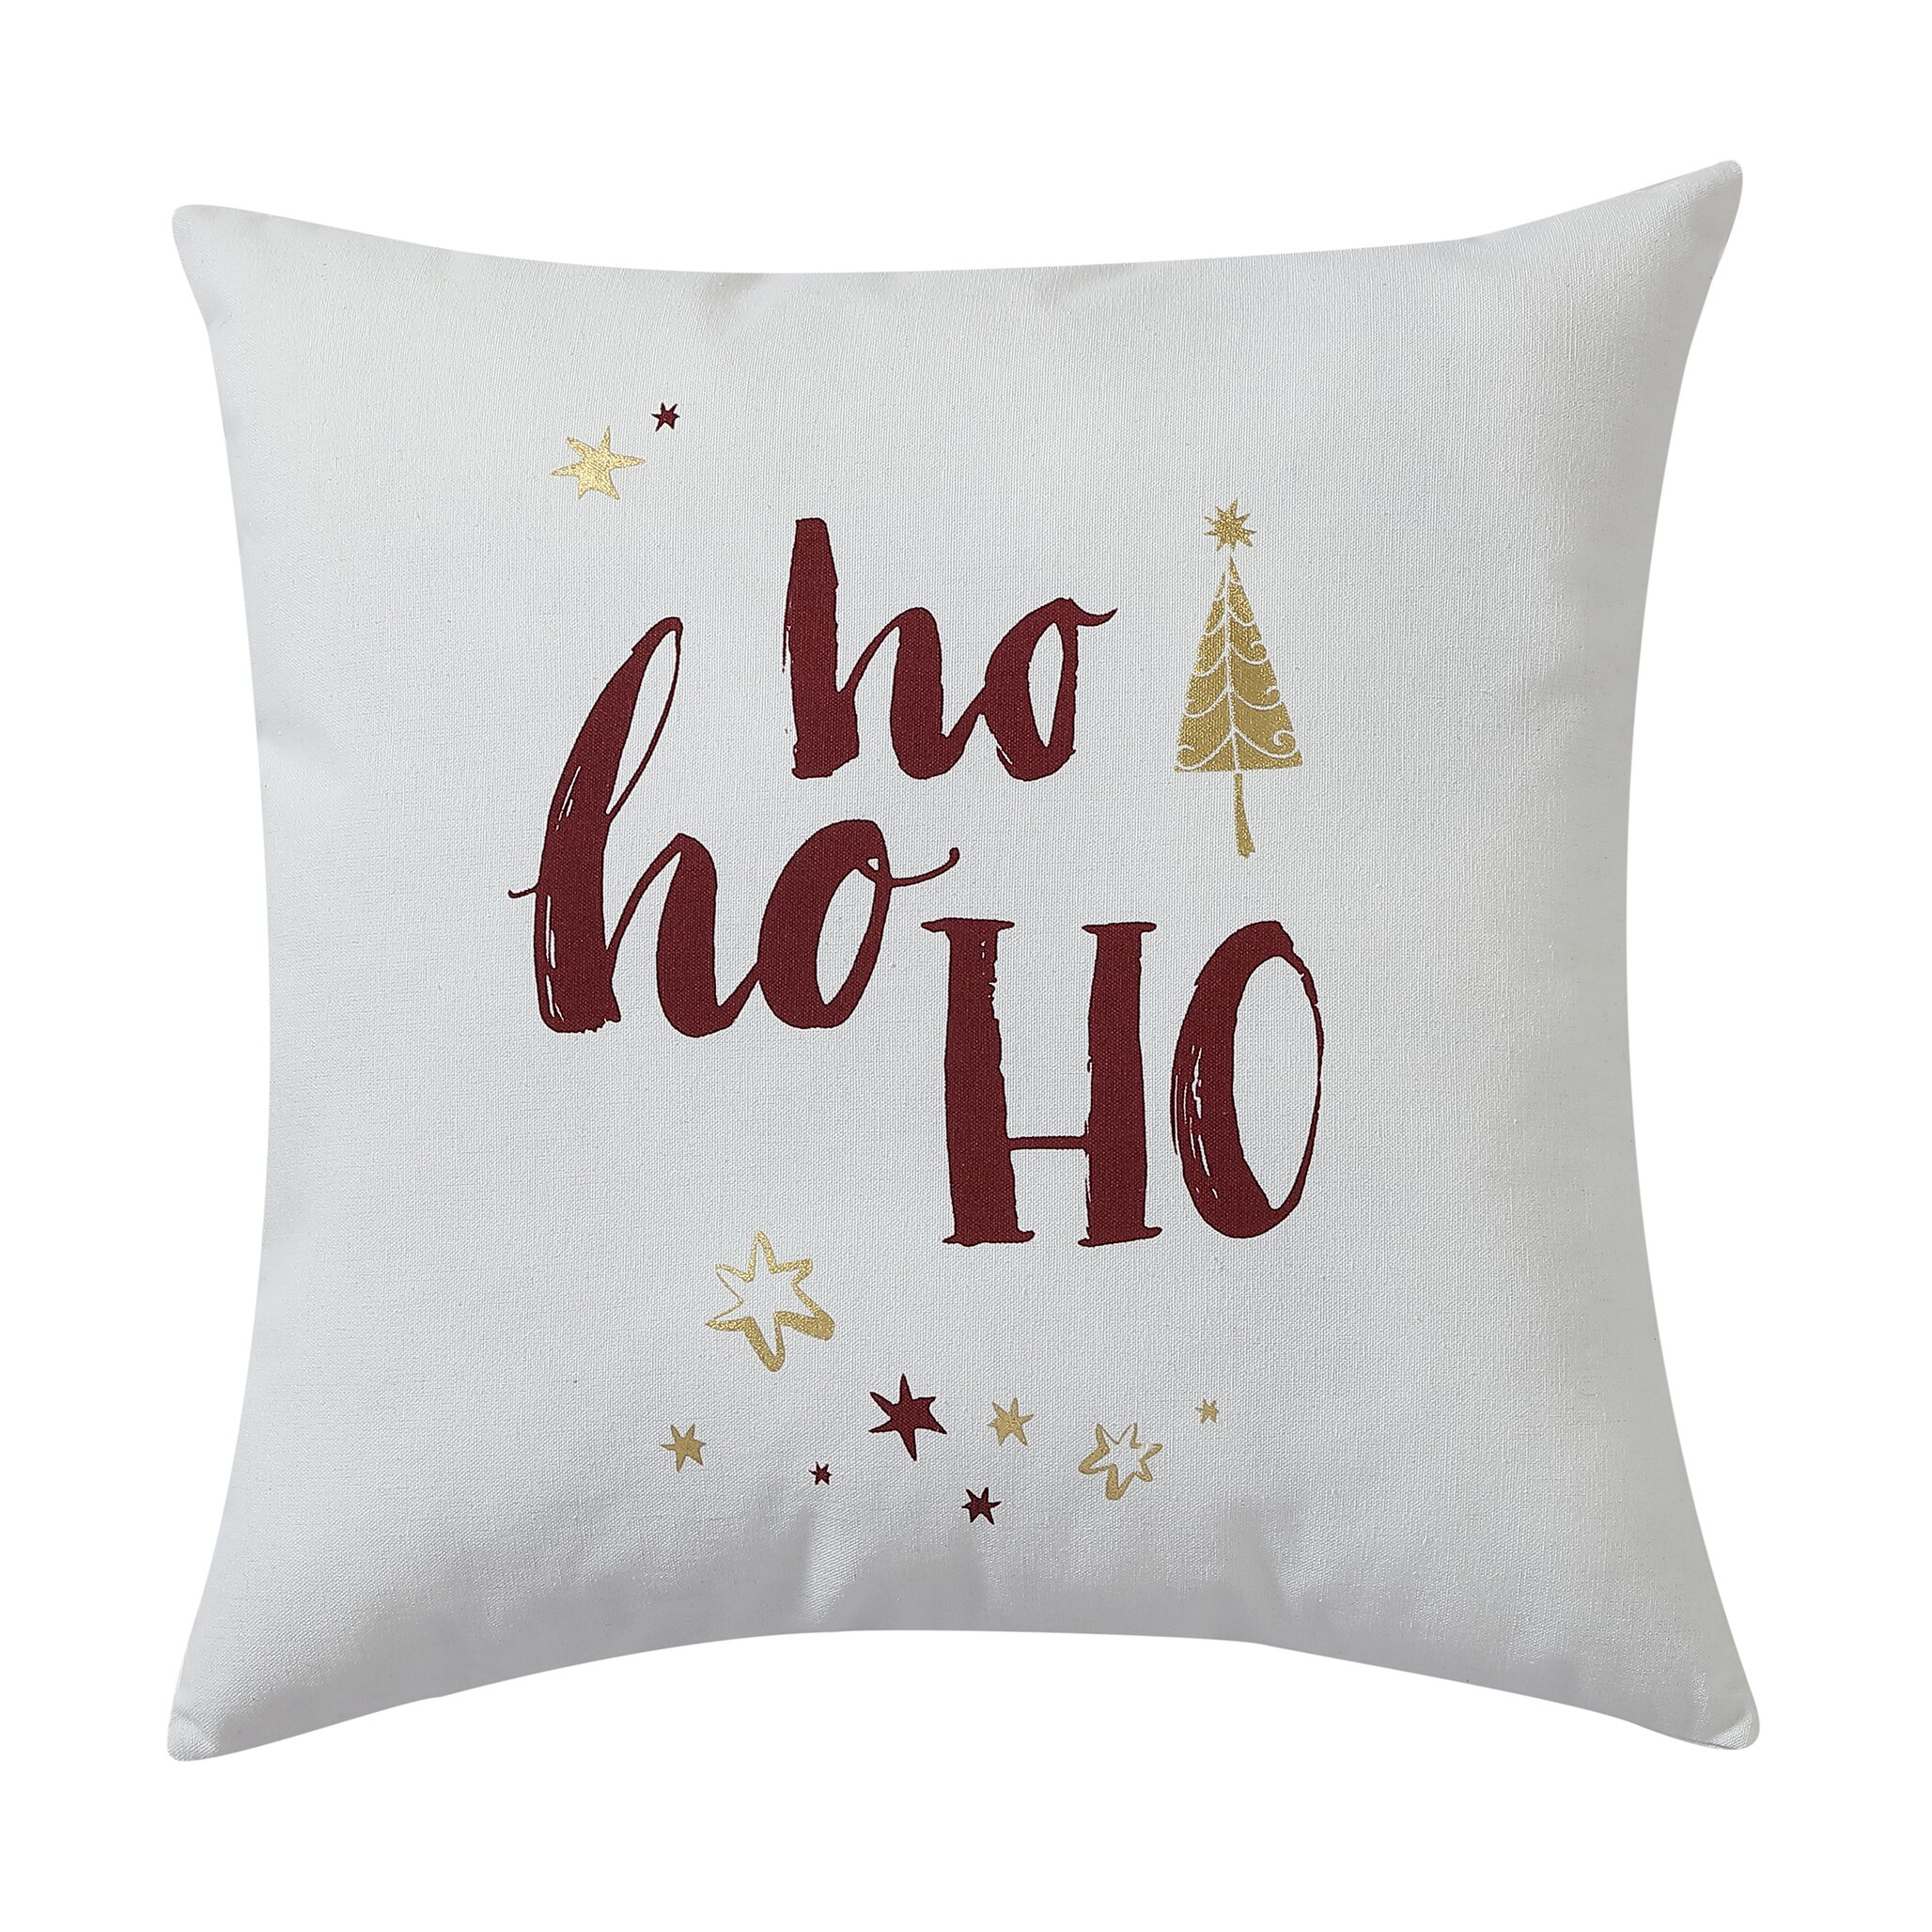 Mercury Row HO HO HO Christmas Decorative Holiday Throw Pillow & Reviews Wayfair.ca